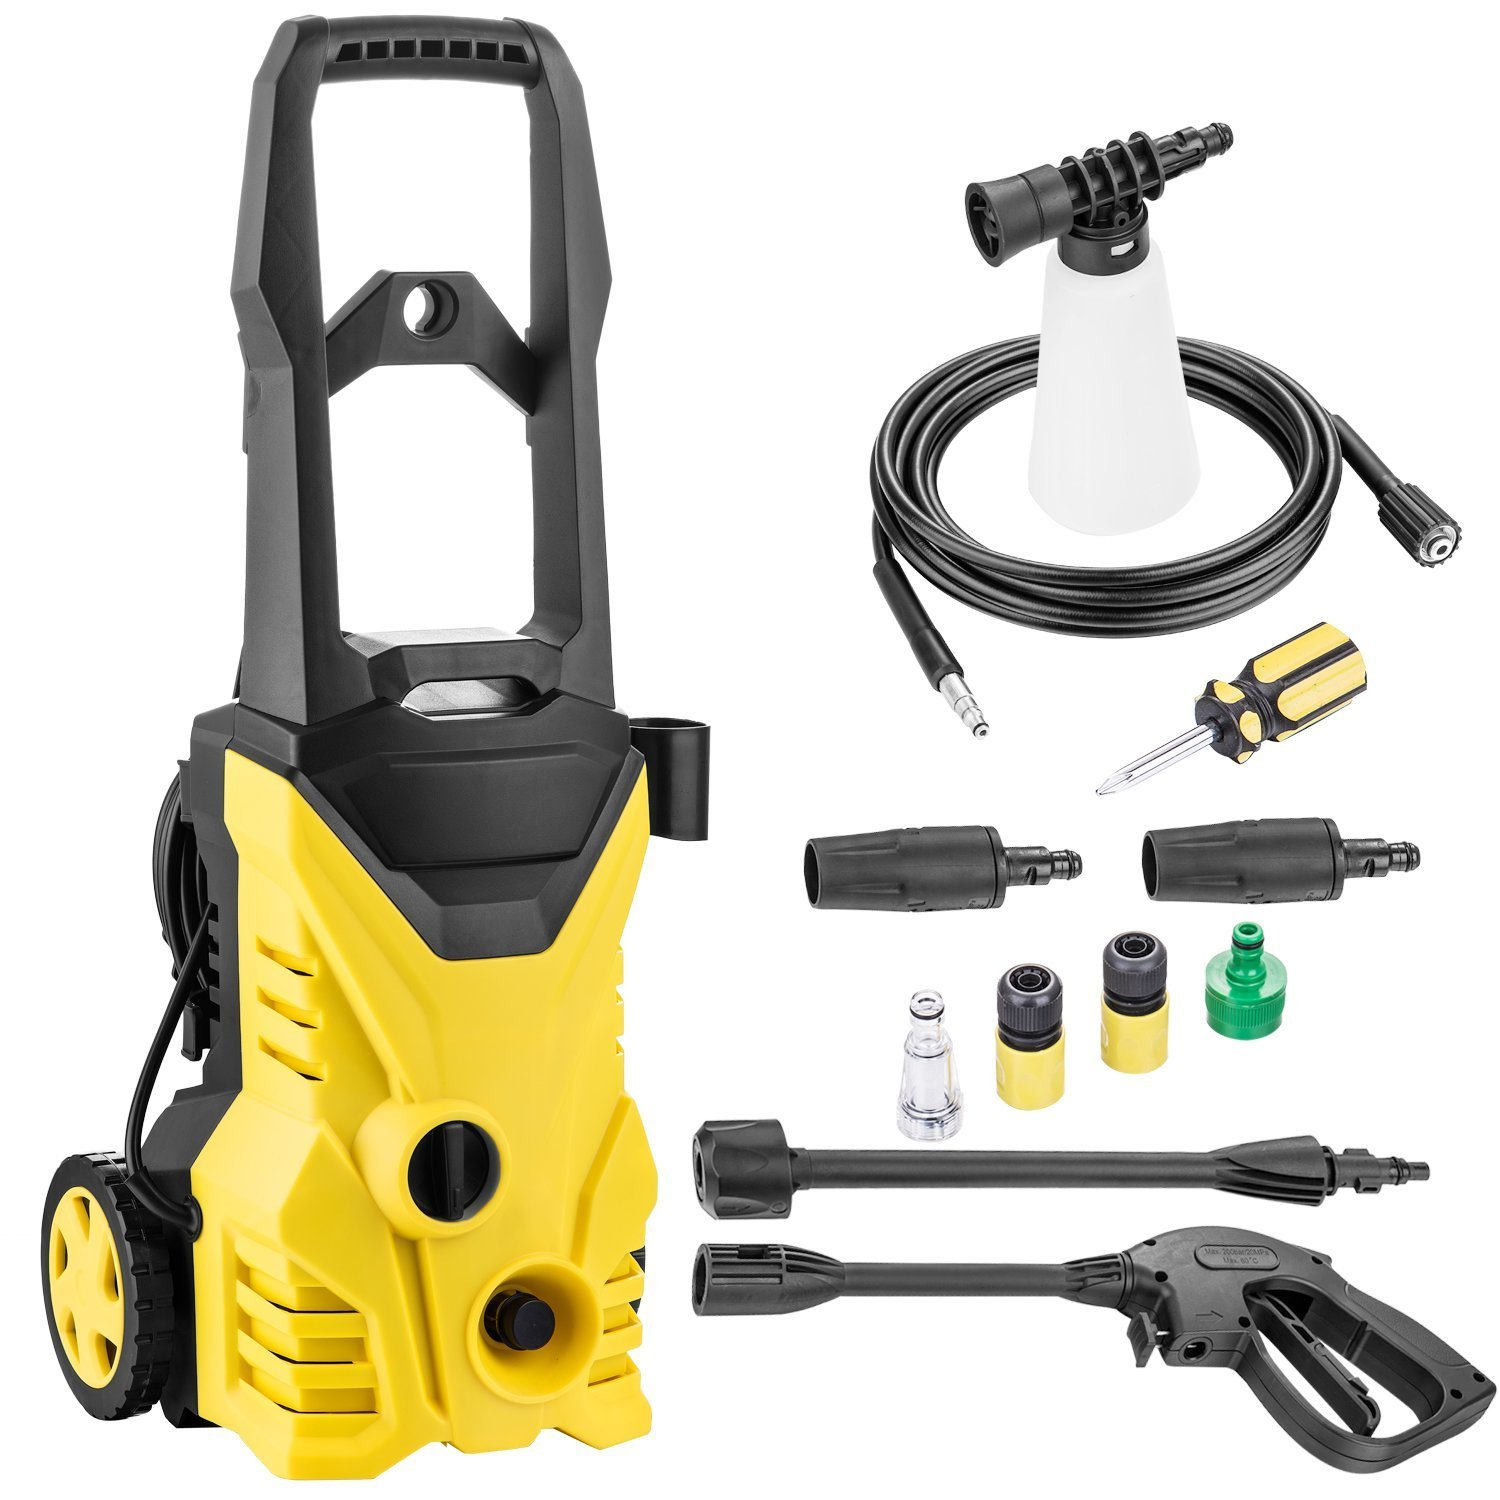 Dtemple 2000PSI 1.4GPM Electric Pressure Washer with Hose Reel for Homes, Cars, Driveways (US STOCK)